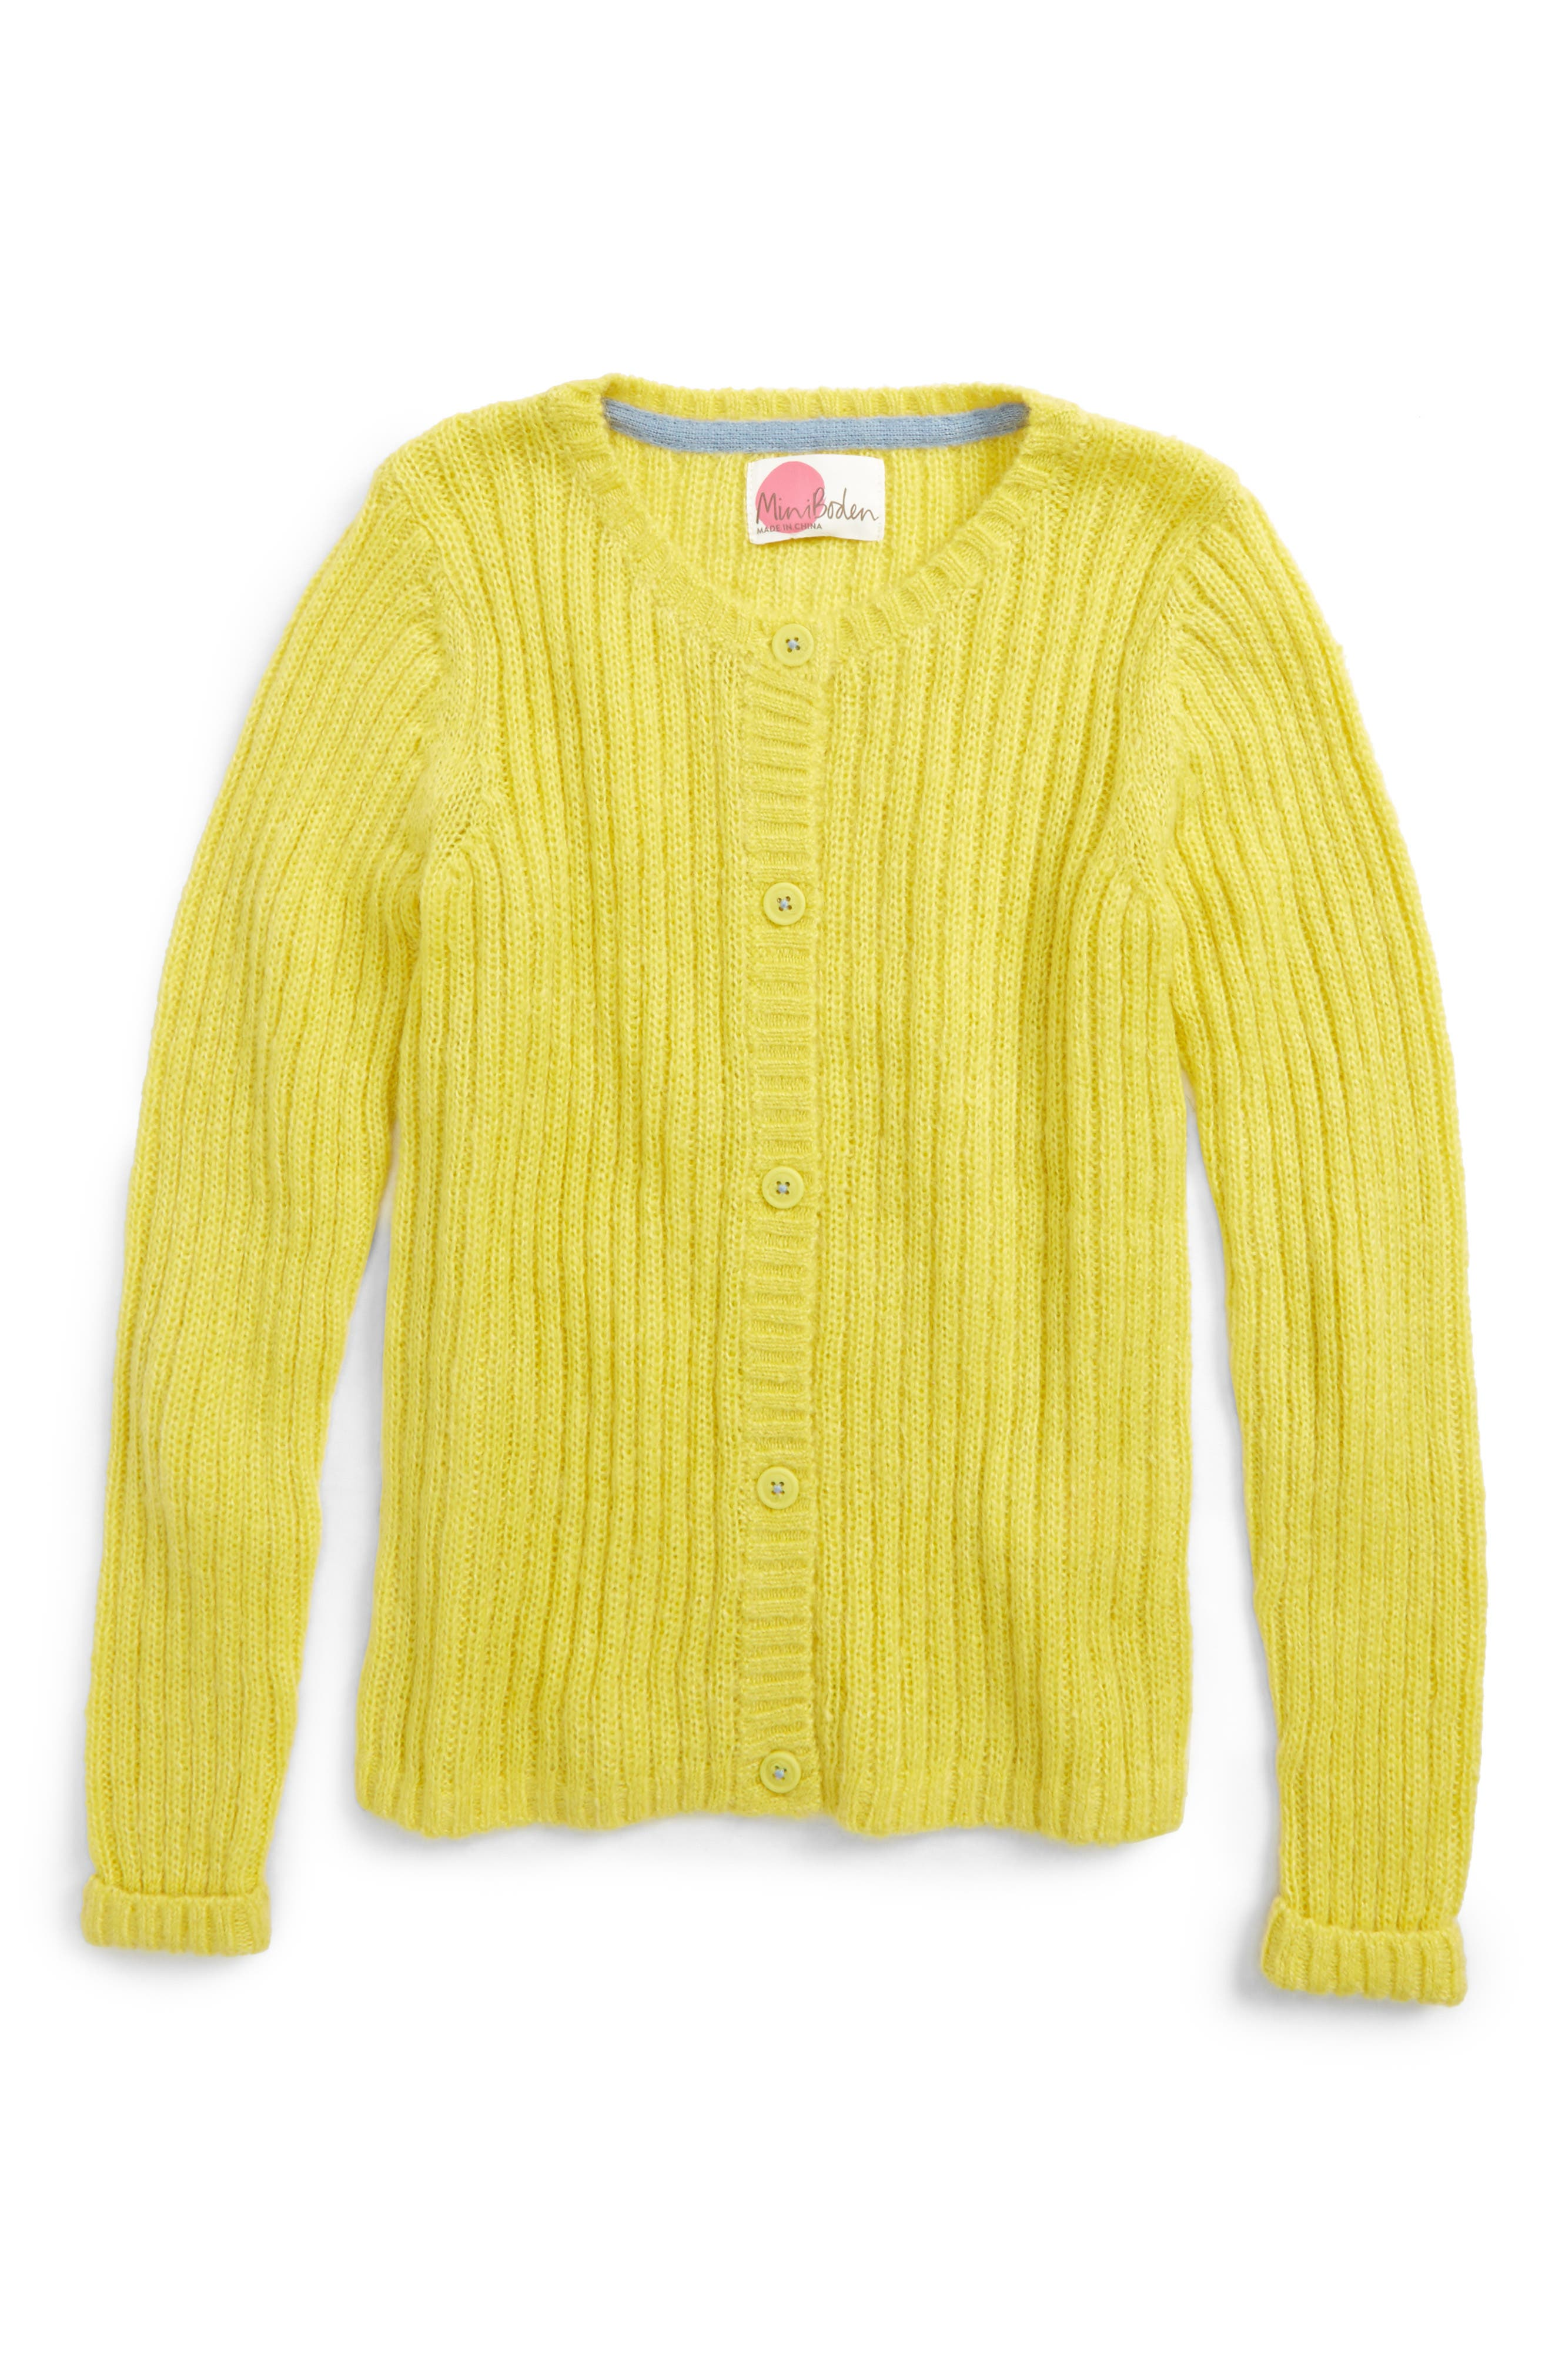 Mini Boden Cosy Everyday Cardigan (Toddler Girls, Little Girls & Big Girls)